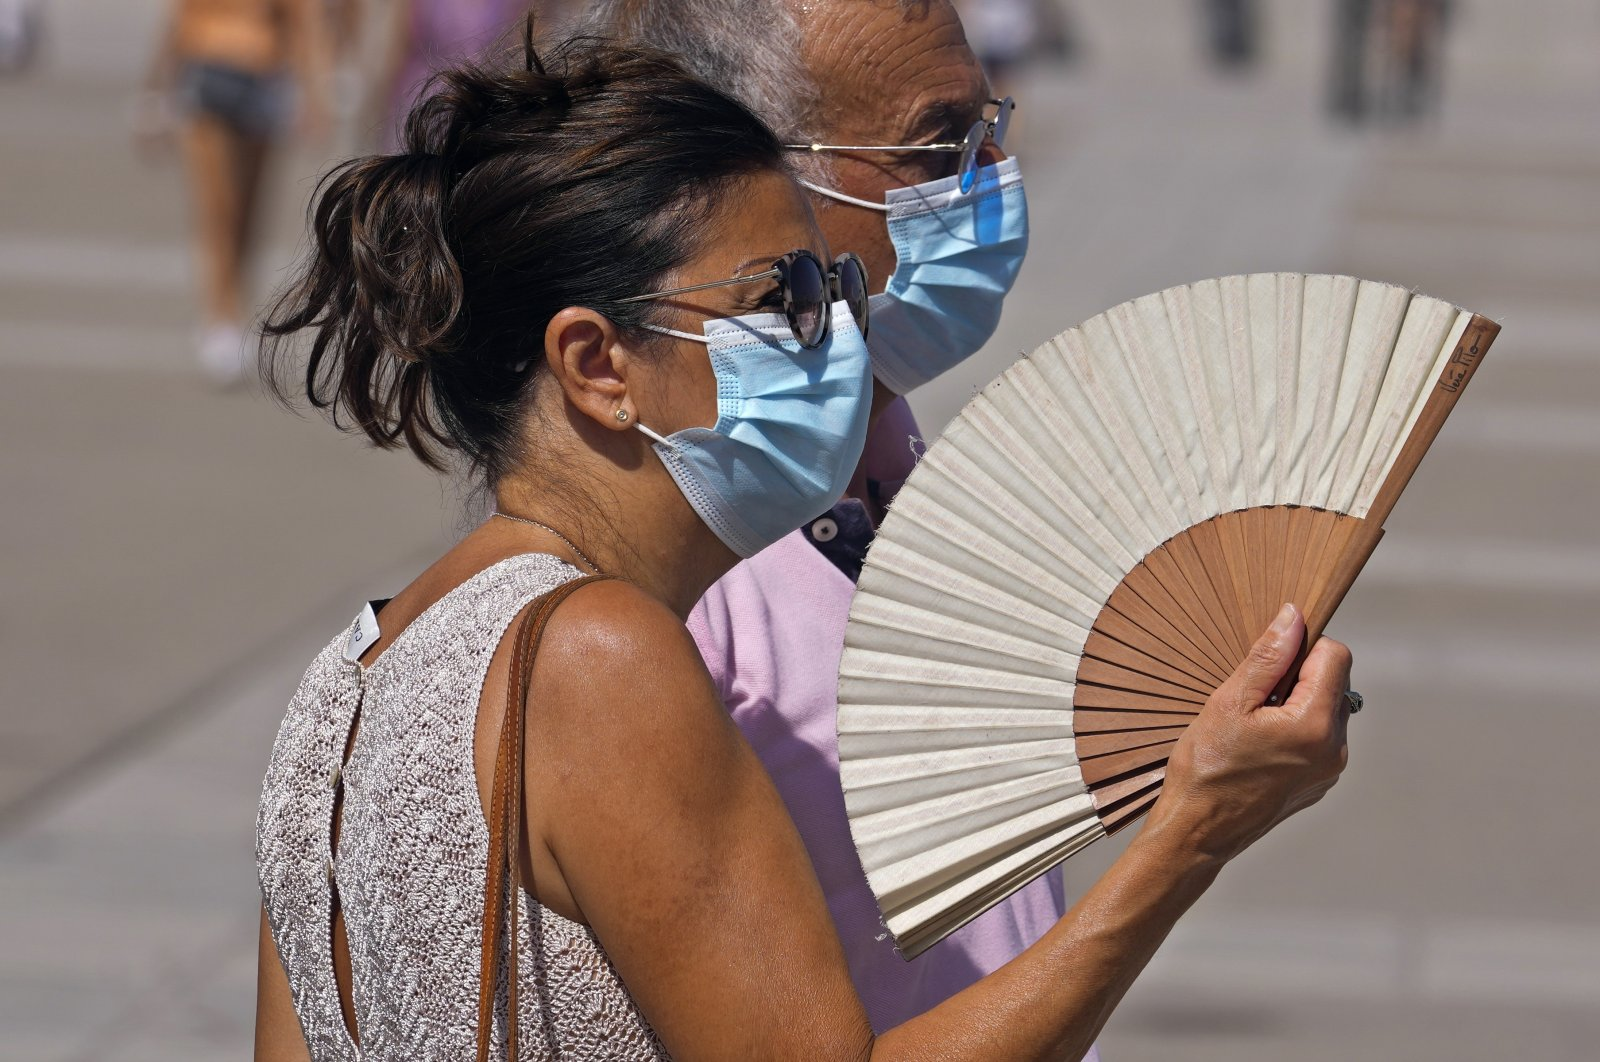 A woman fans herself in Madrid, Spain, Aug. 10, 2021. (AP Photo)